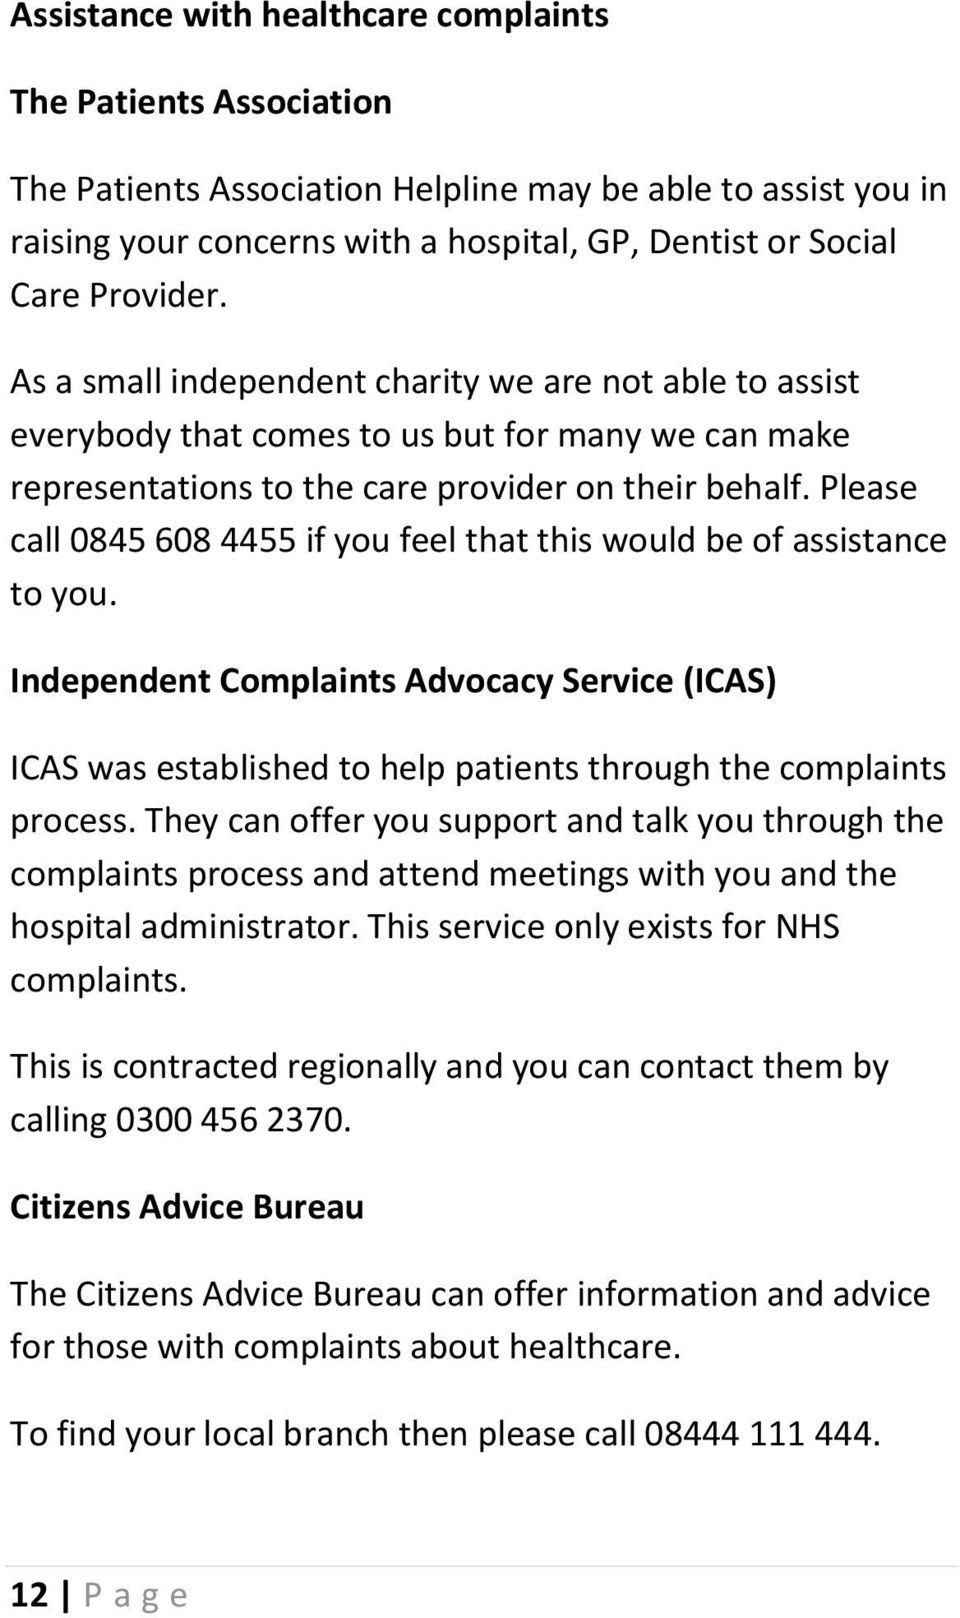 Please call 0845 608 4455 if you feel that this would be of assistance to you. Independent Complaints Advocacy Service (ICAS) ICAS was established to help patients through the complaints process.